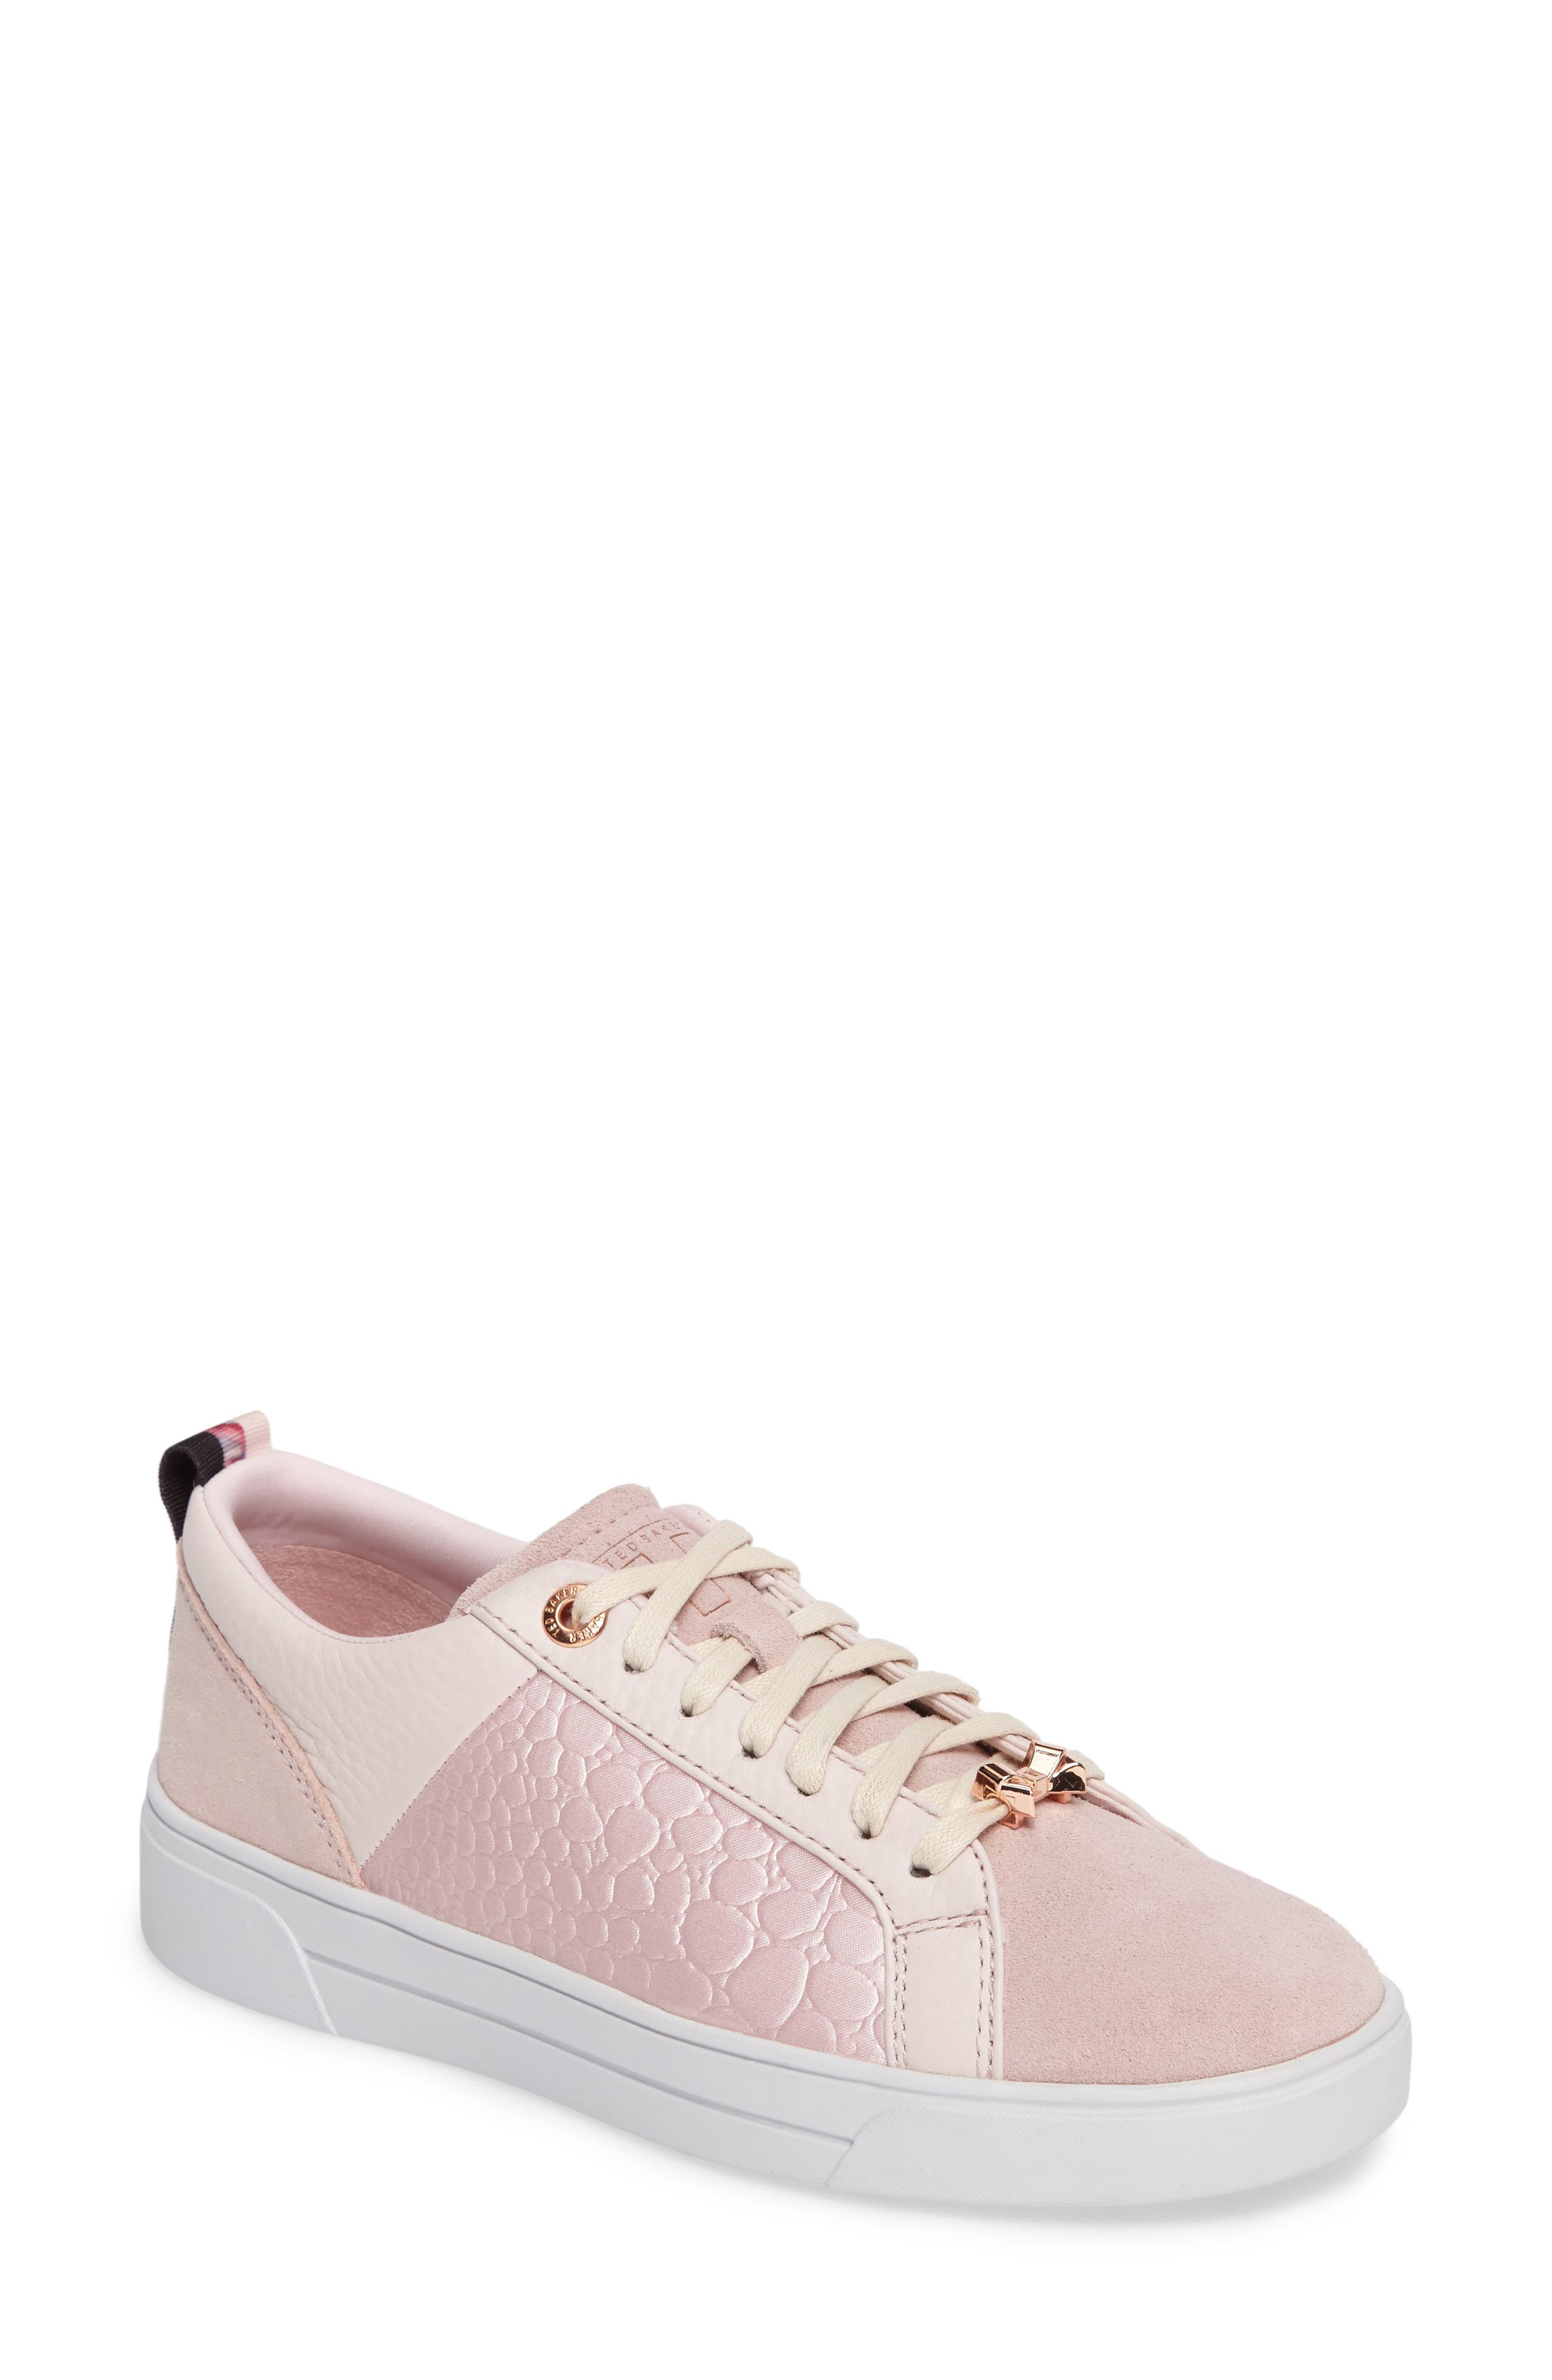 Kulei Sneaker,                             Main thumbnail 1, color,                             Light Pink Leather